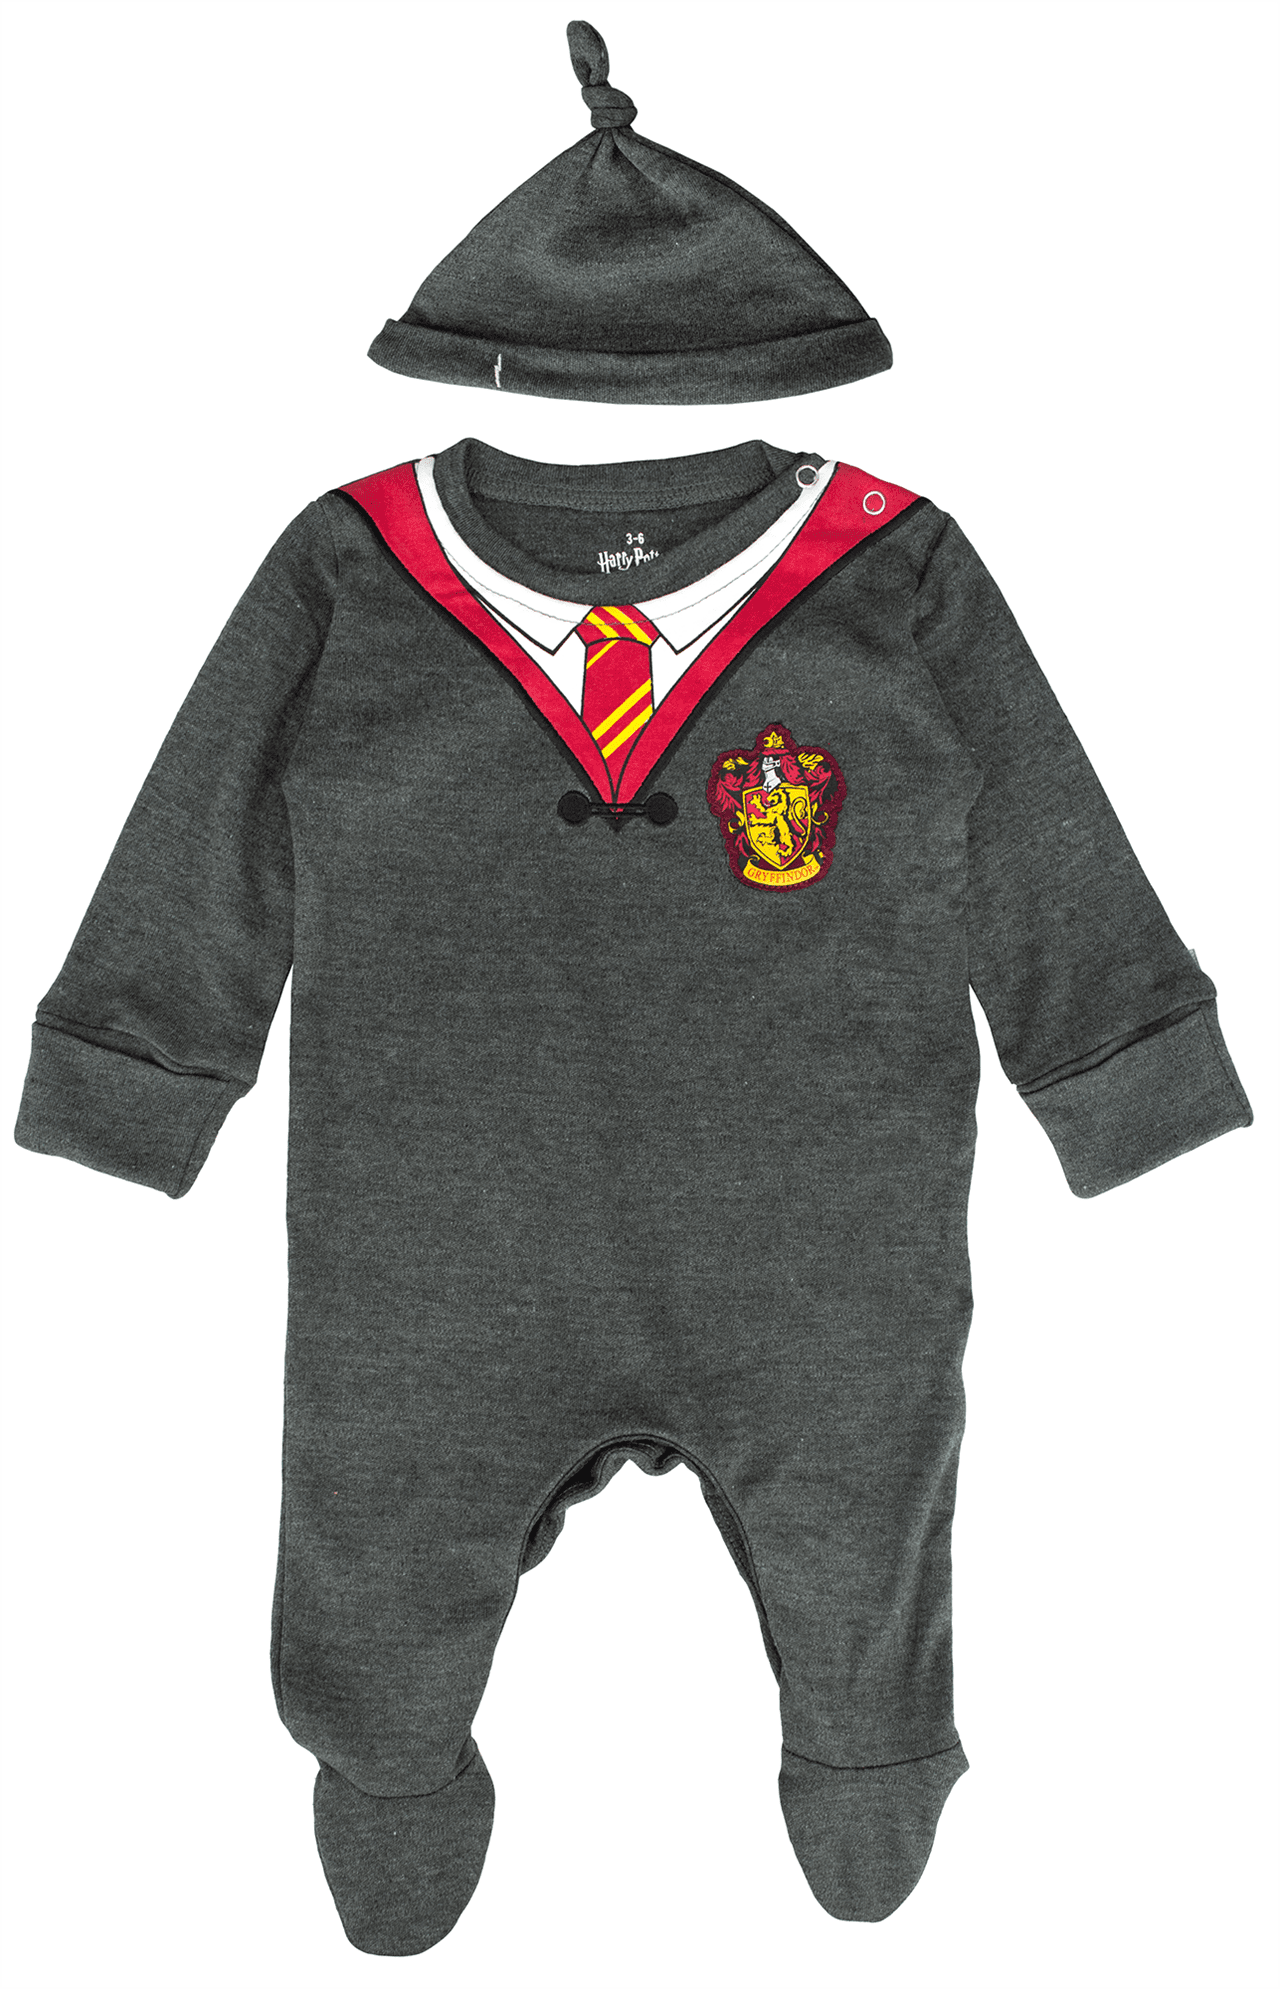 Harry Potter: Gryffindor Baby Grow with Baby Hat (0-3) - 1